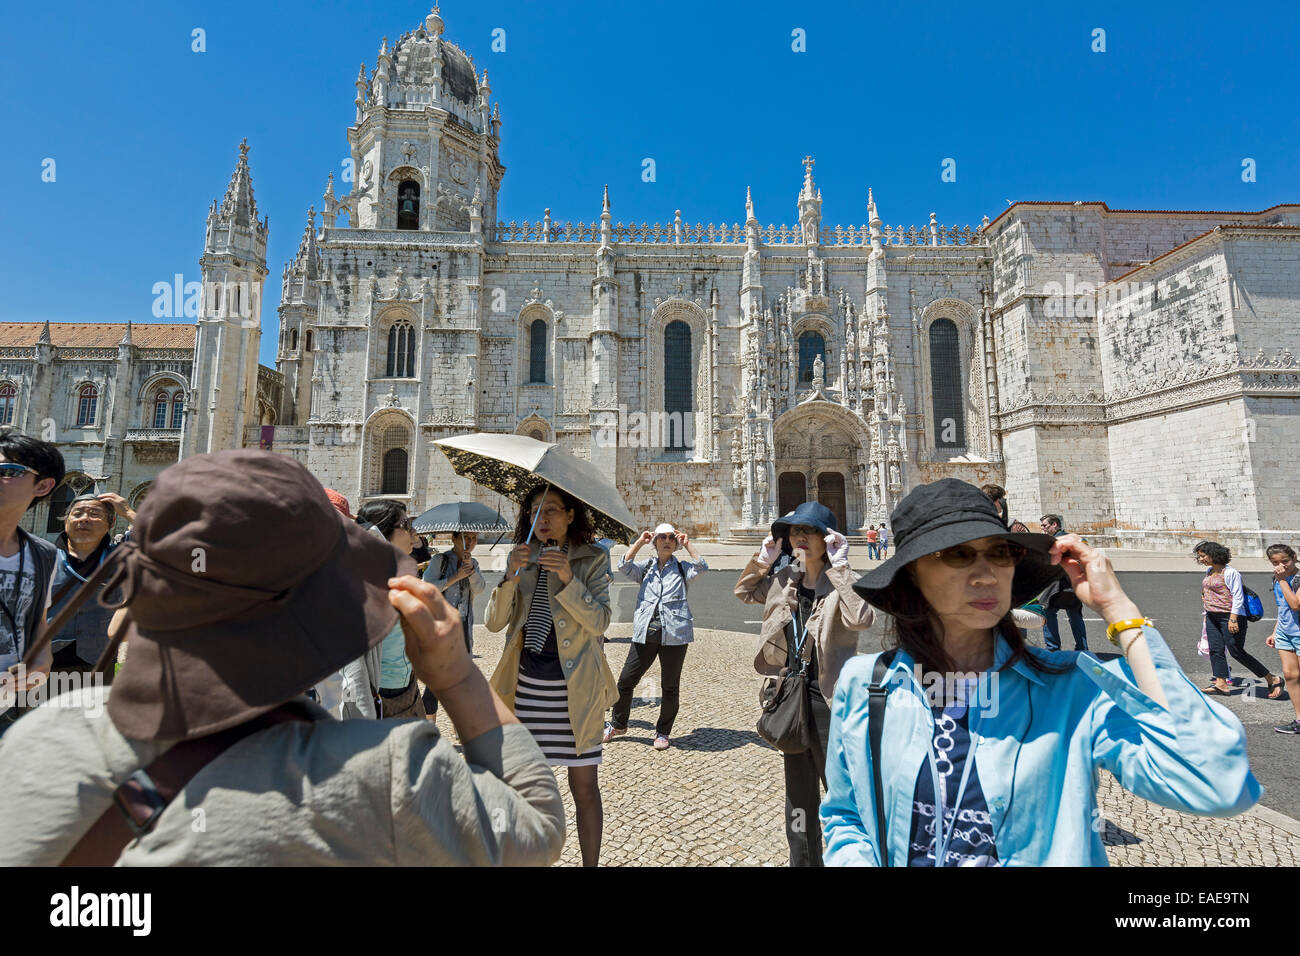 Japanese tourists in front of the Mosteiro dos Jerónimos, Jeronimos Monastery, UNESCO World Cultural Heritage Site, Stock Photo